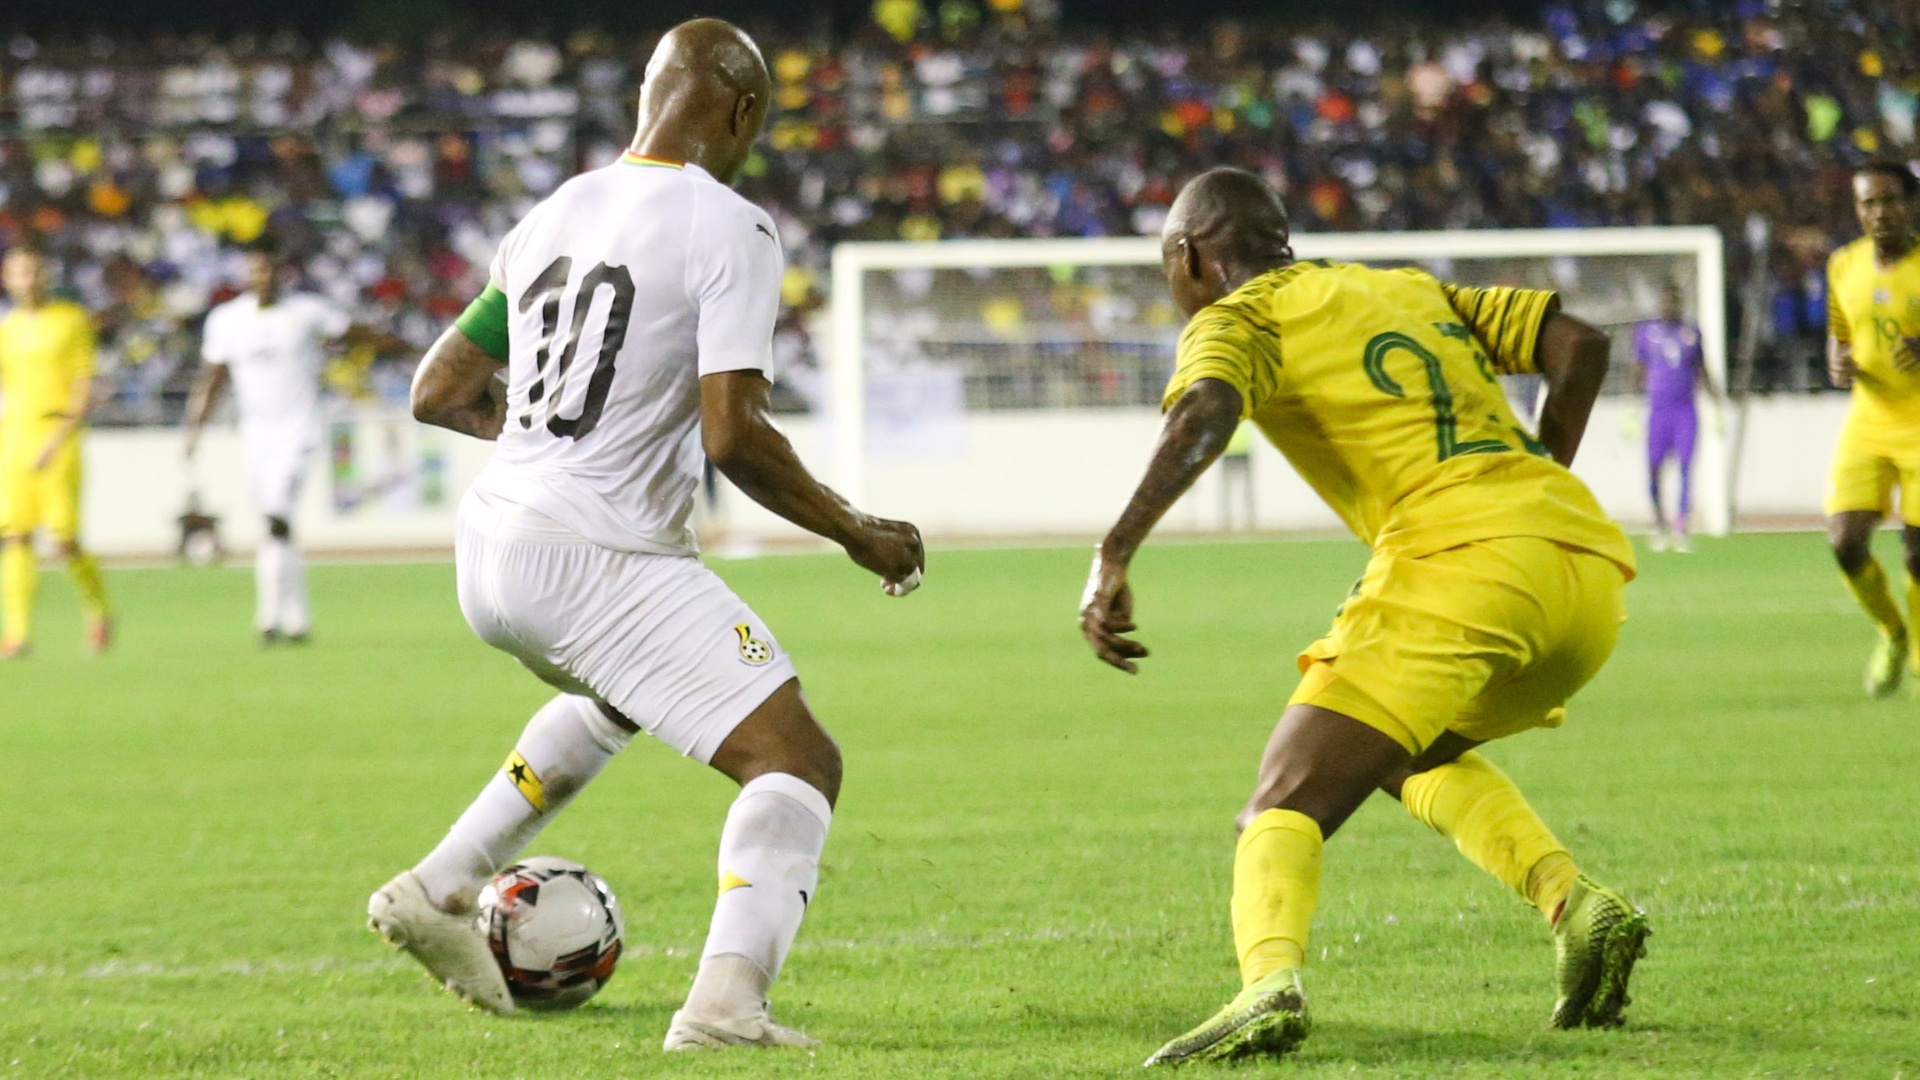 Afcon 2022 qualifies: Nordsjaelland coach Dramani advises Ghana after Sudan setback